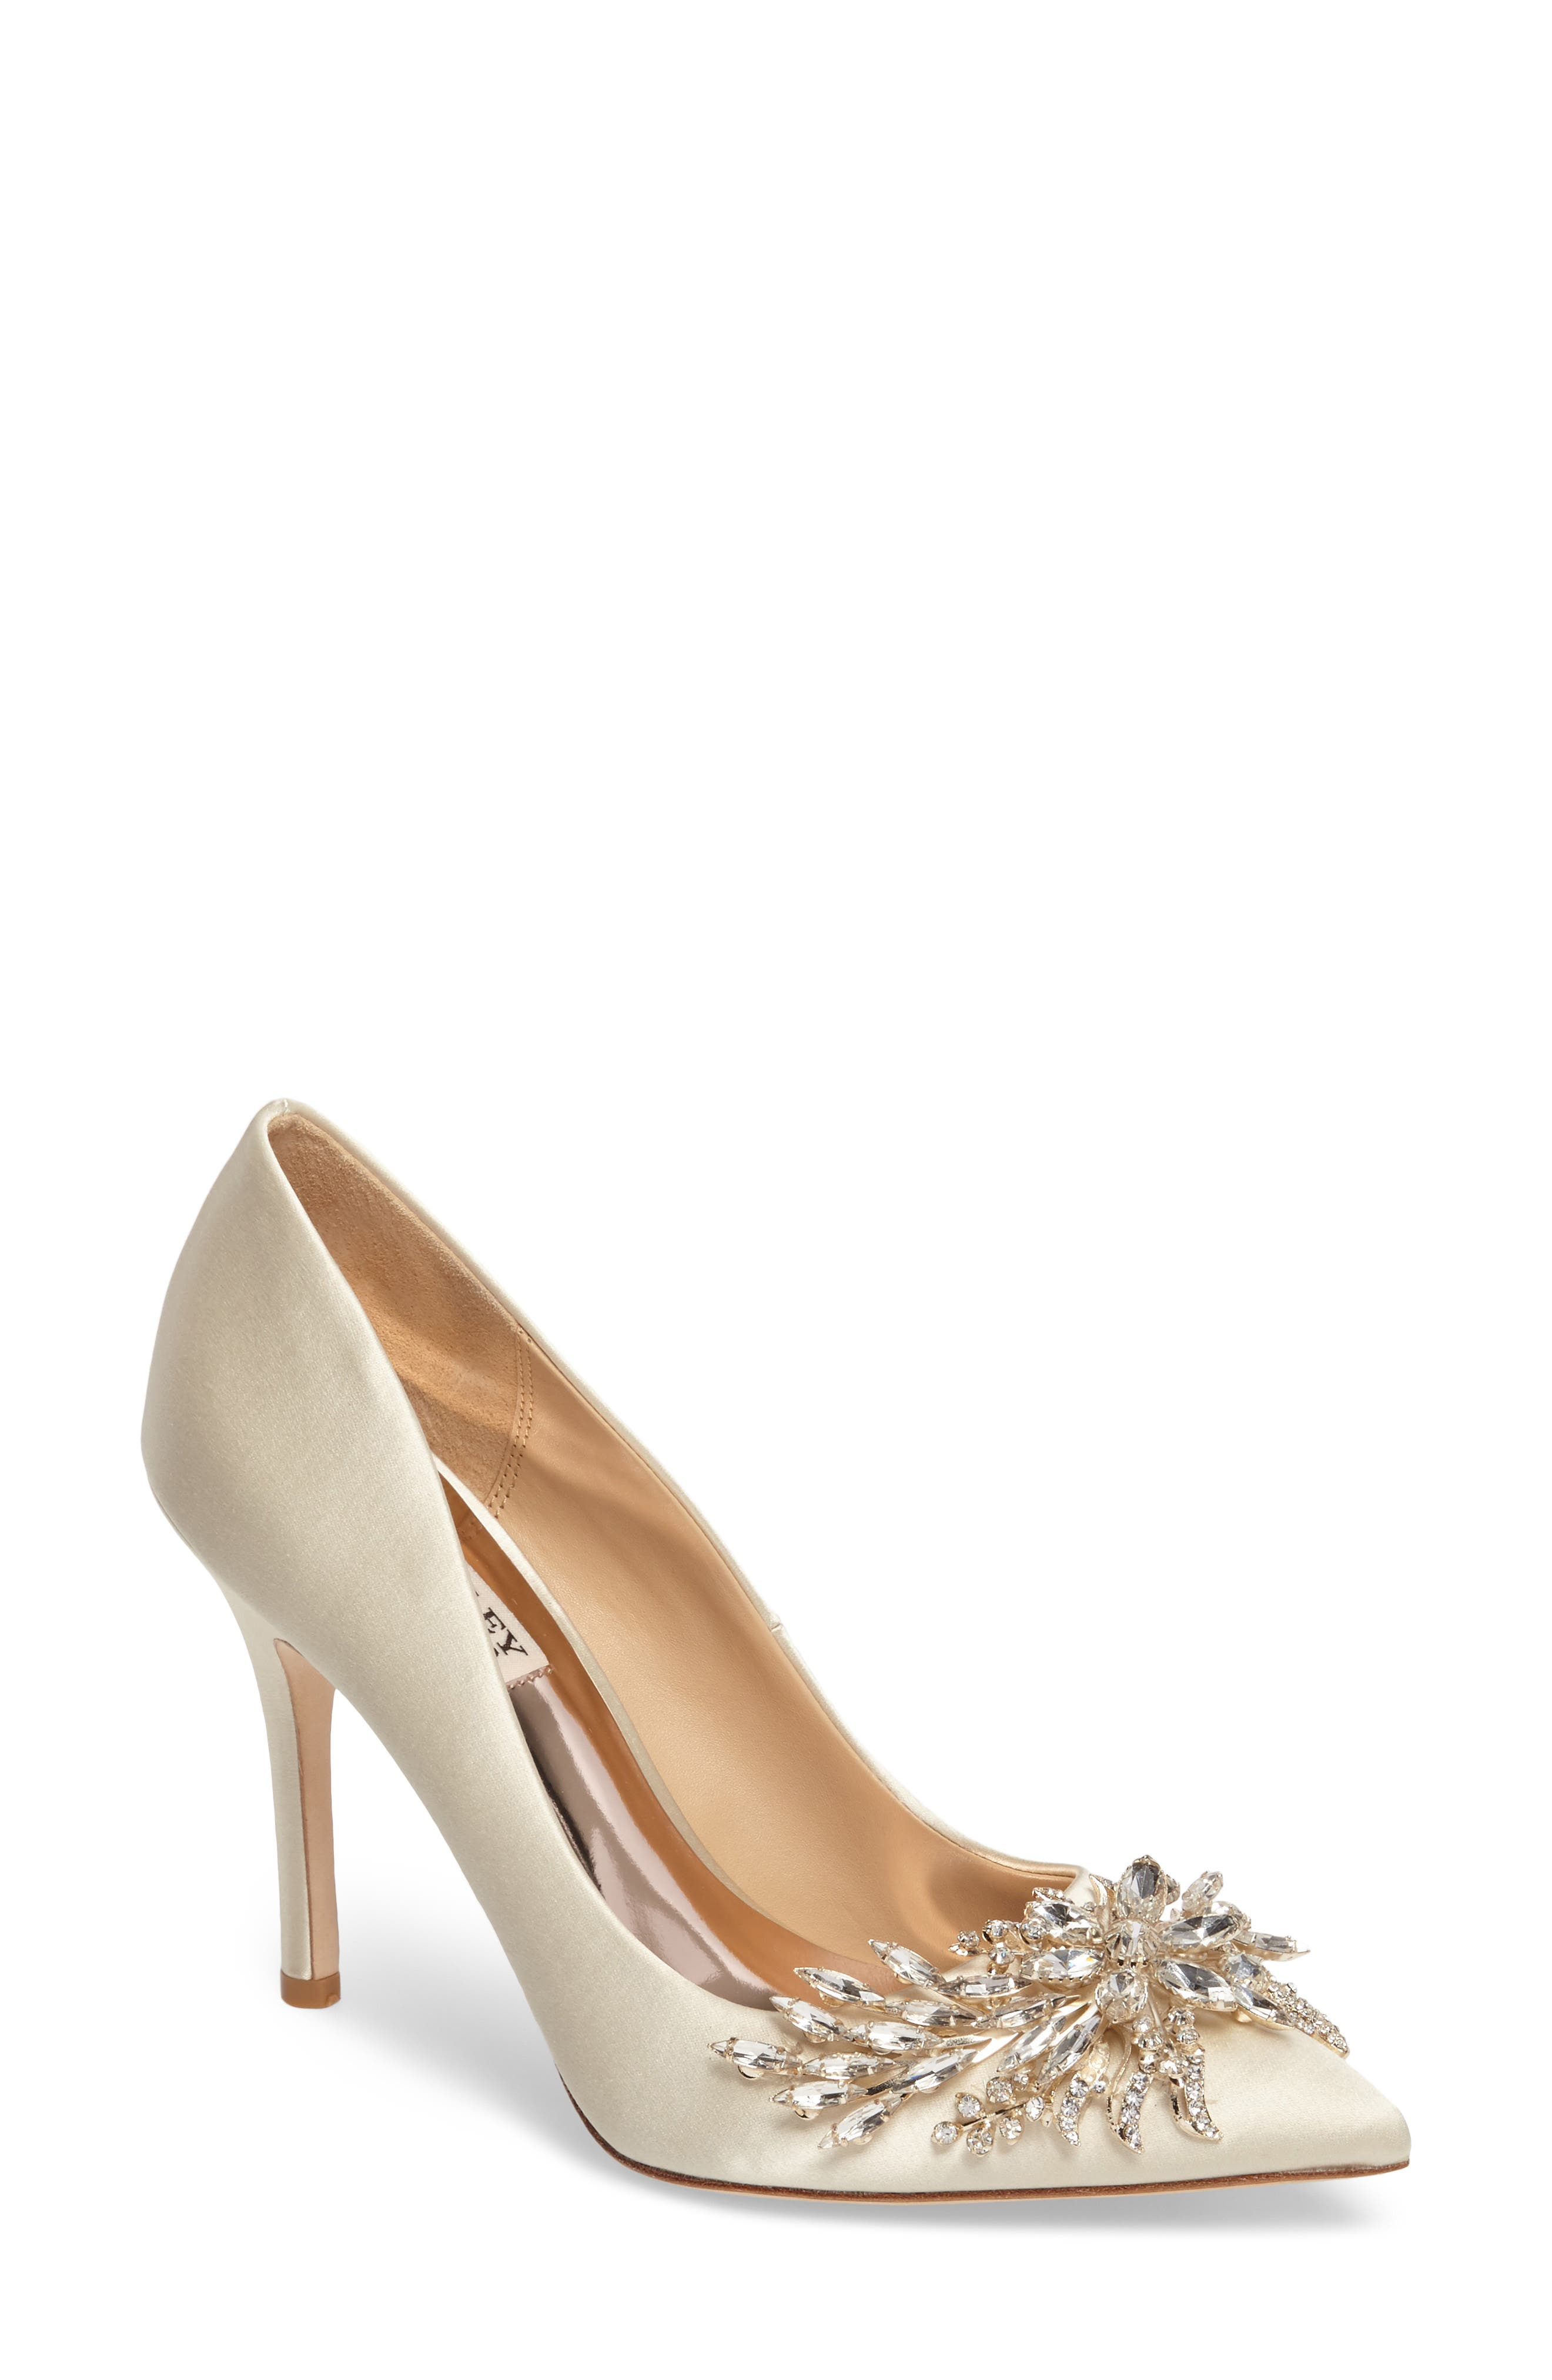 Marcela Pointy Toe Pump,                         Main,                         color, Ivory Satin